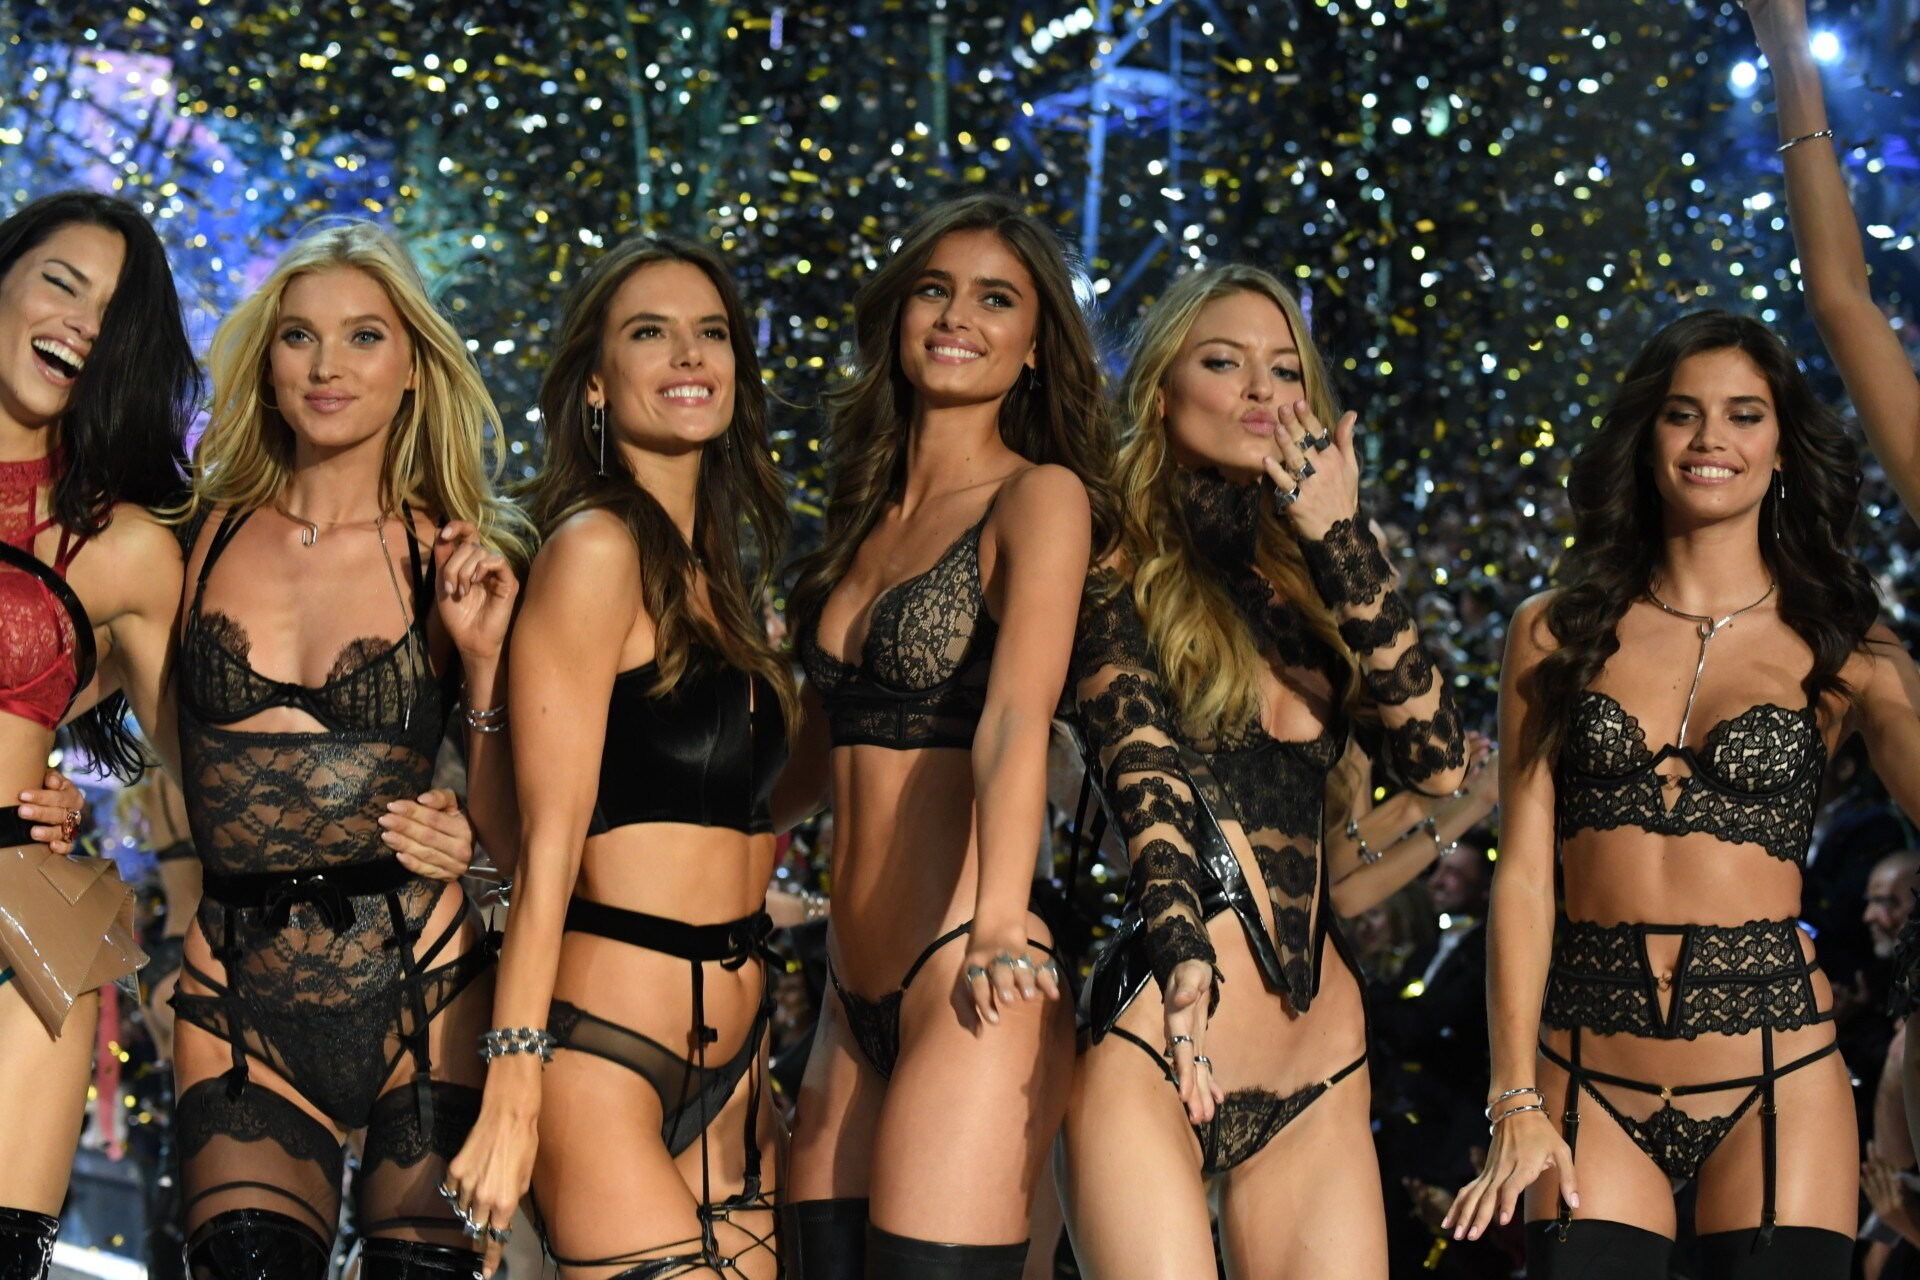 Victorias Secret Show 2018 >> Angel 101: Vogue's cheat sheet to the 2017 Victoria's Secret Fashion Show - Vogue Australia